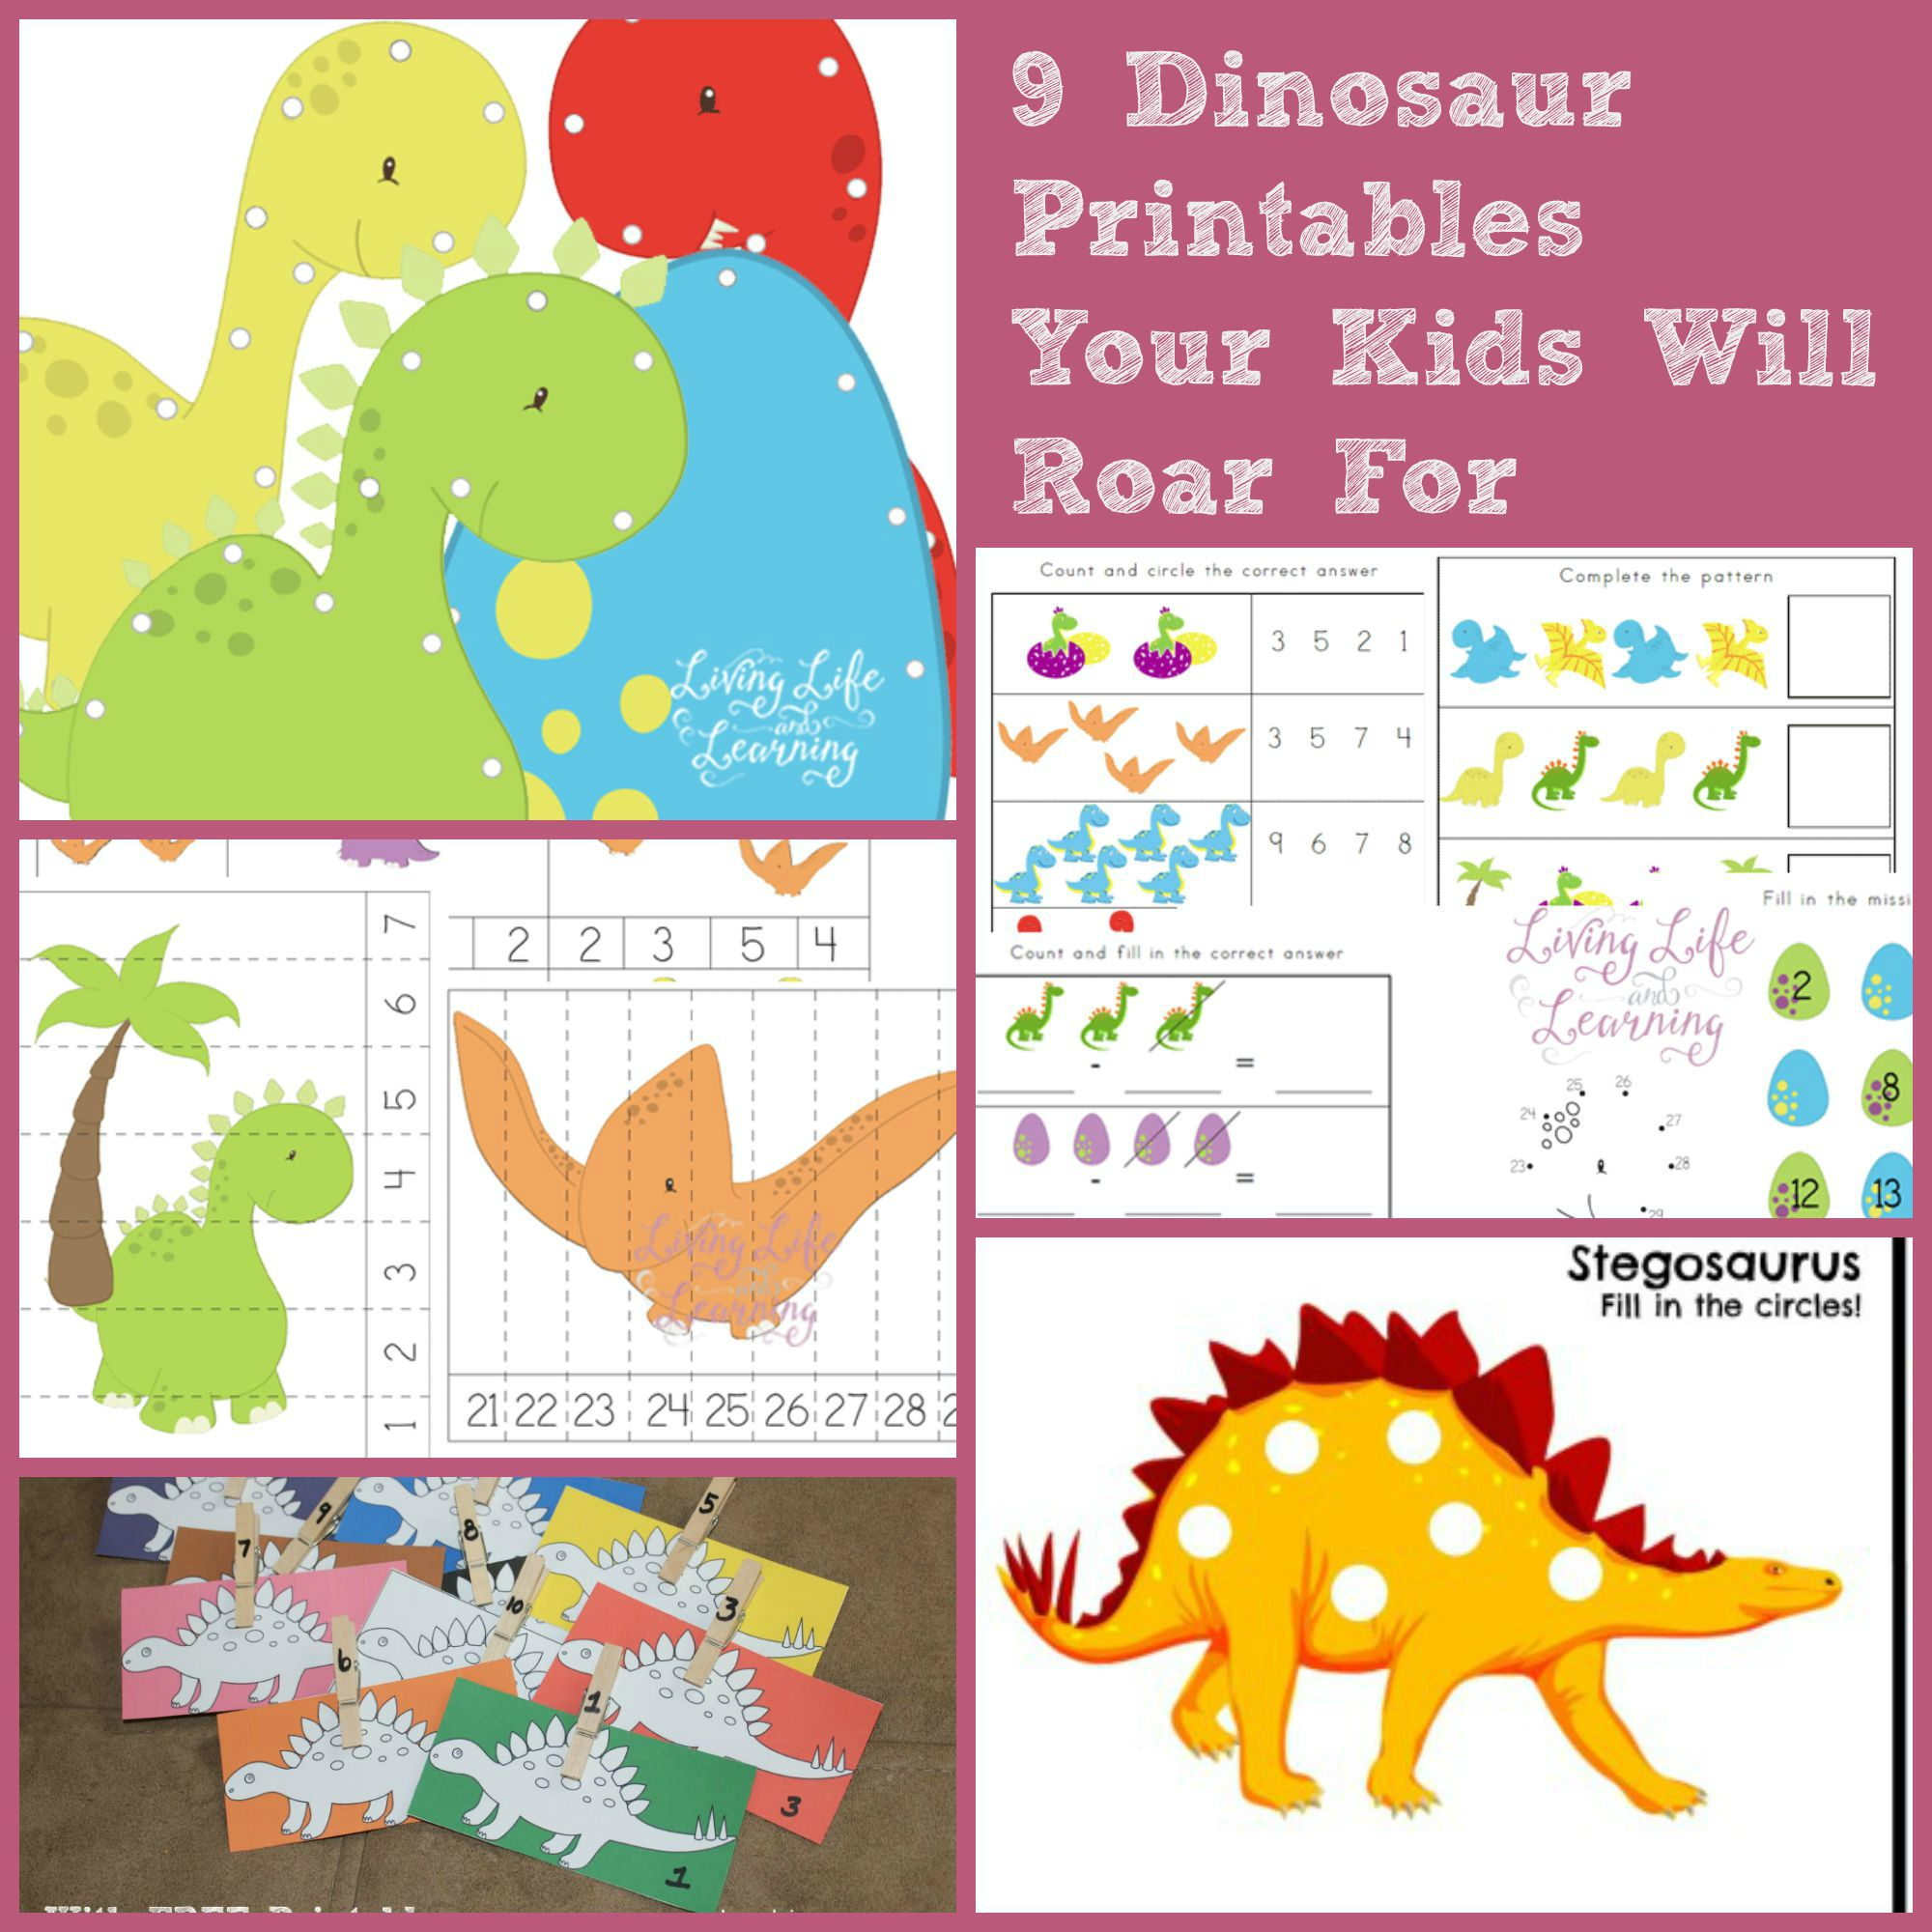 9 Dinosaur Printables To Roar For